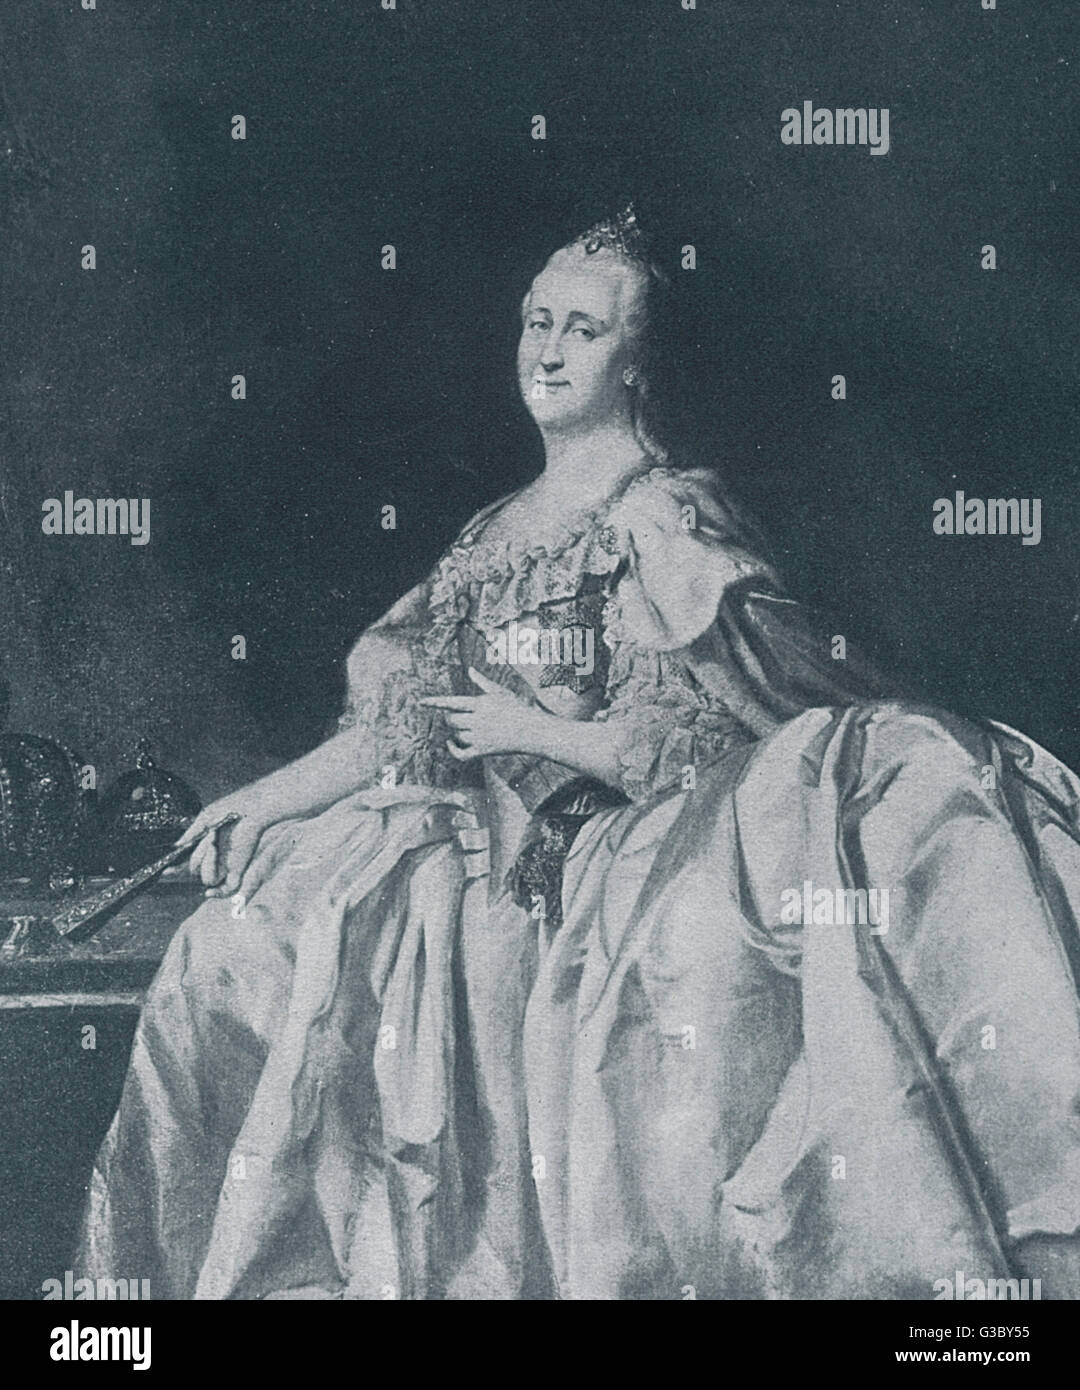 Yekaterina Alexeevna or Catherine II, also known as Catherine the Great of Russia (1729-1796, reigned 1762-1796).      Date: 18th century Stock Photo